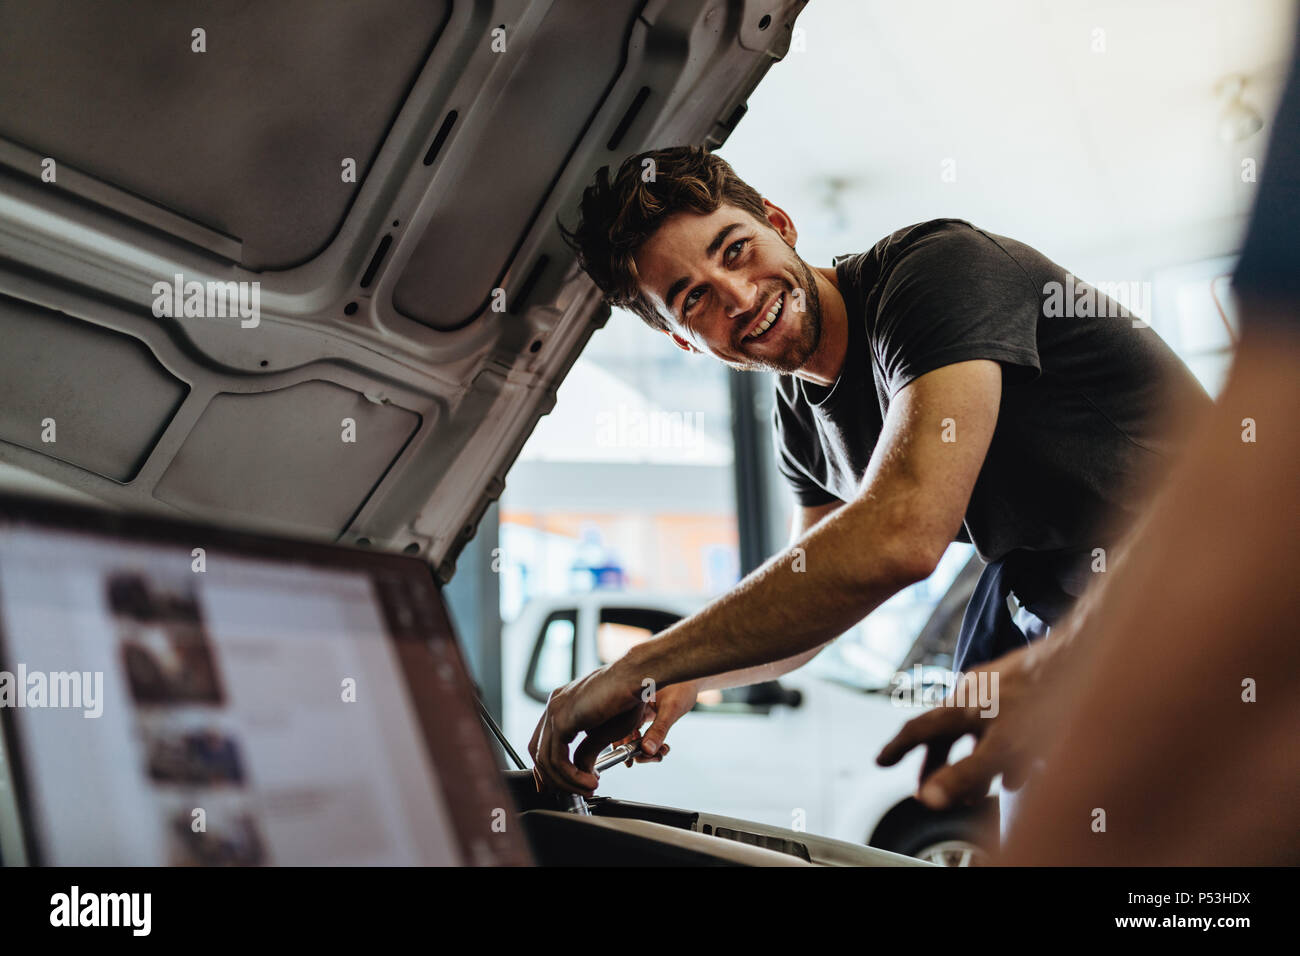 Auto mechanic fixing a vehicle in service station. Car mechanic working at automotive service center looking at his coworker and smiling. - Stock Image